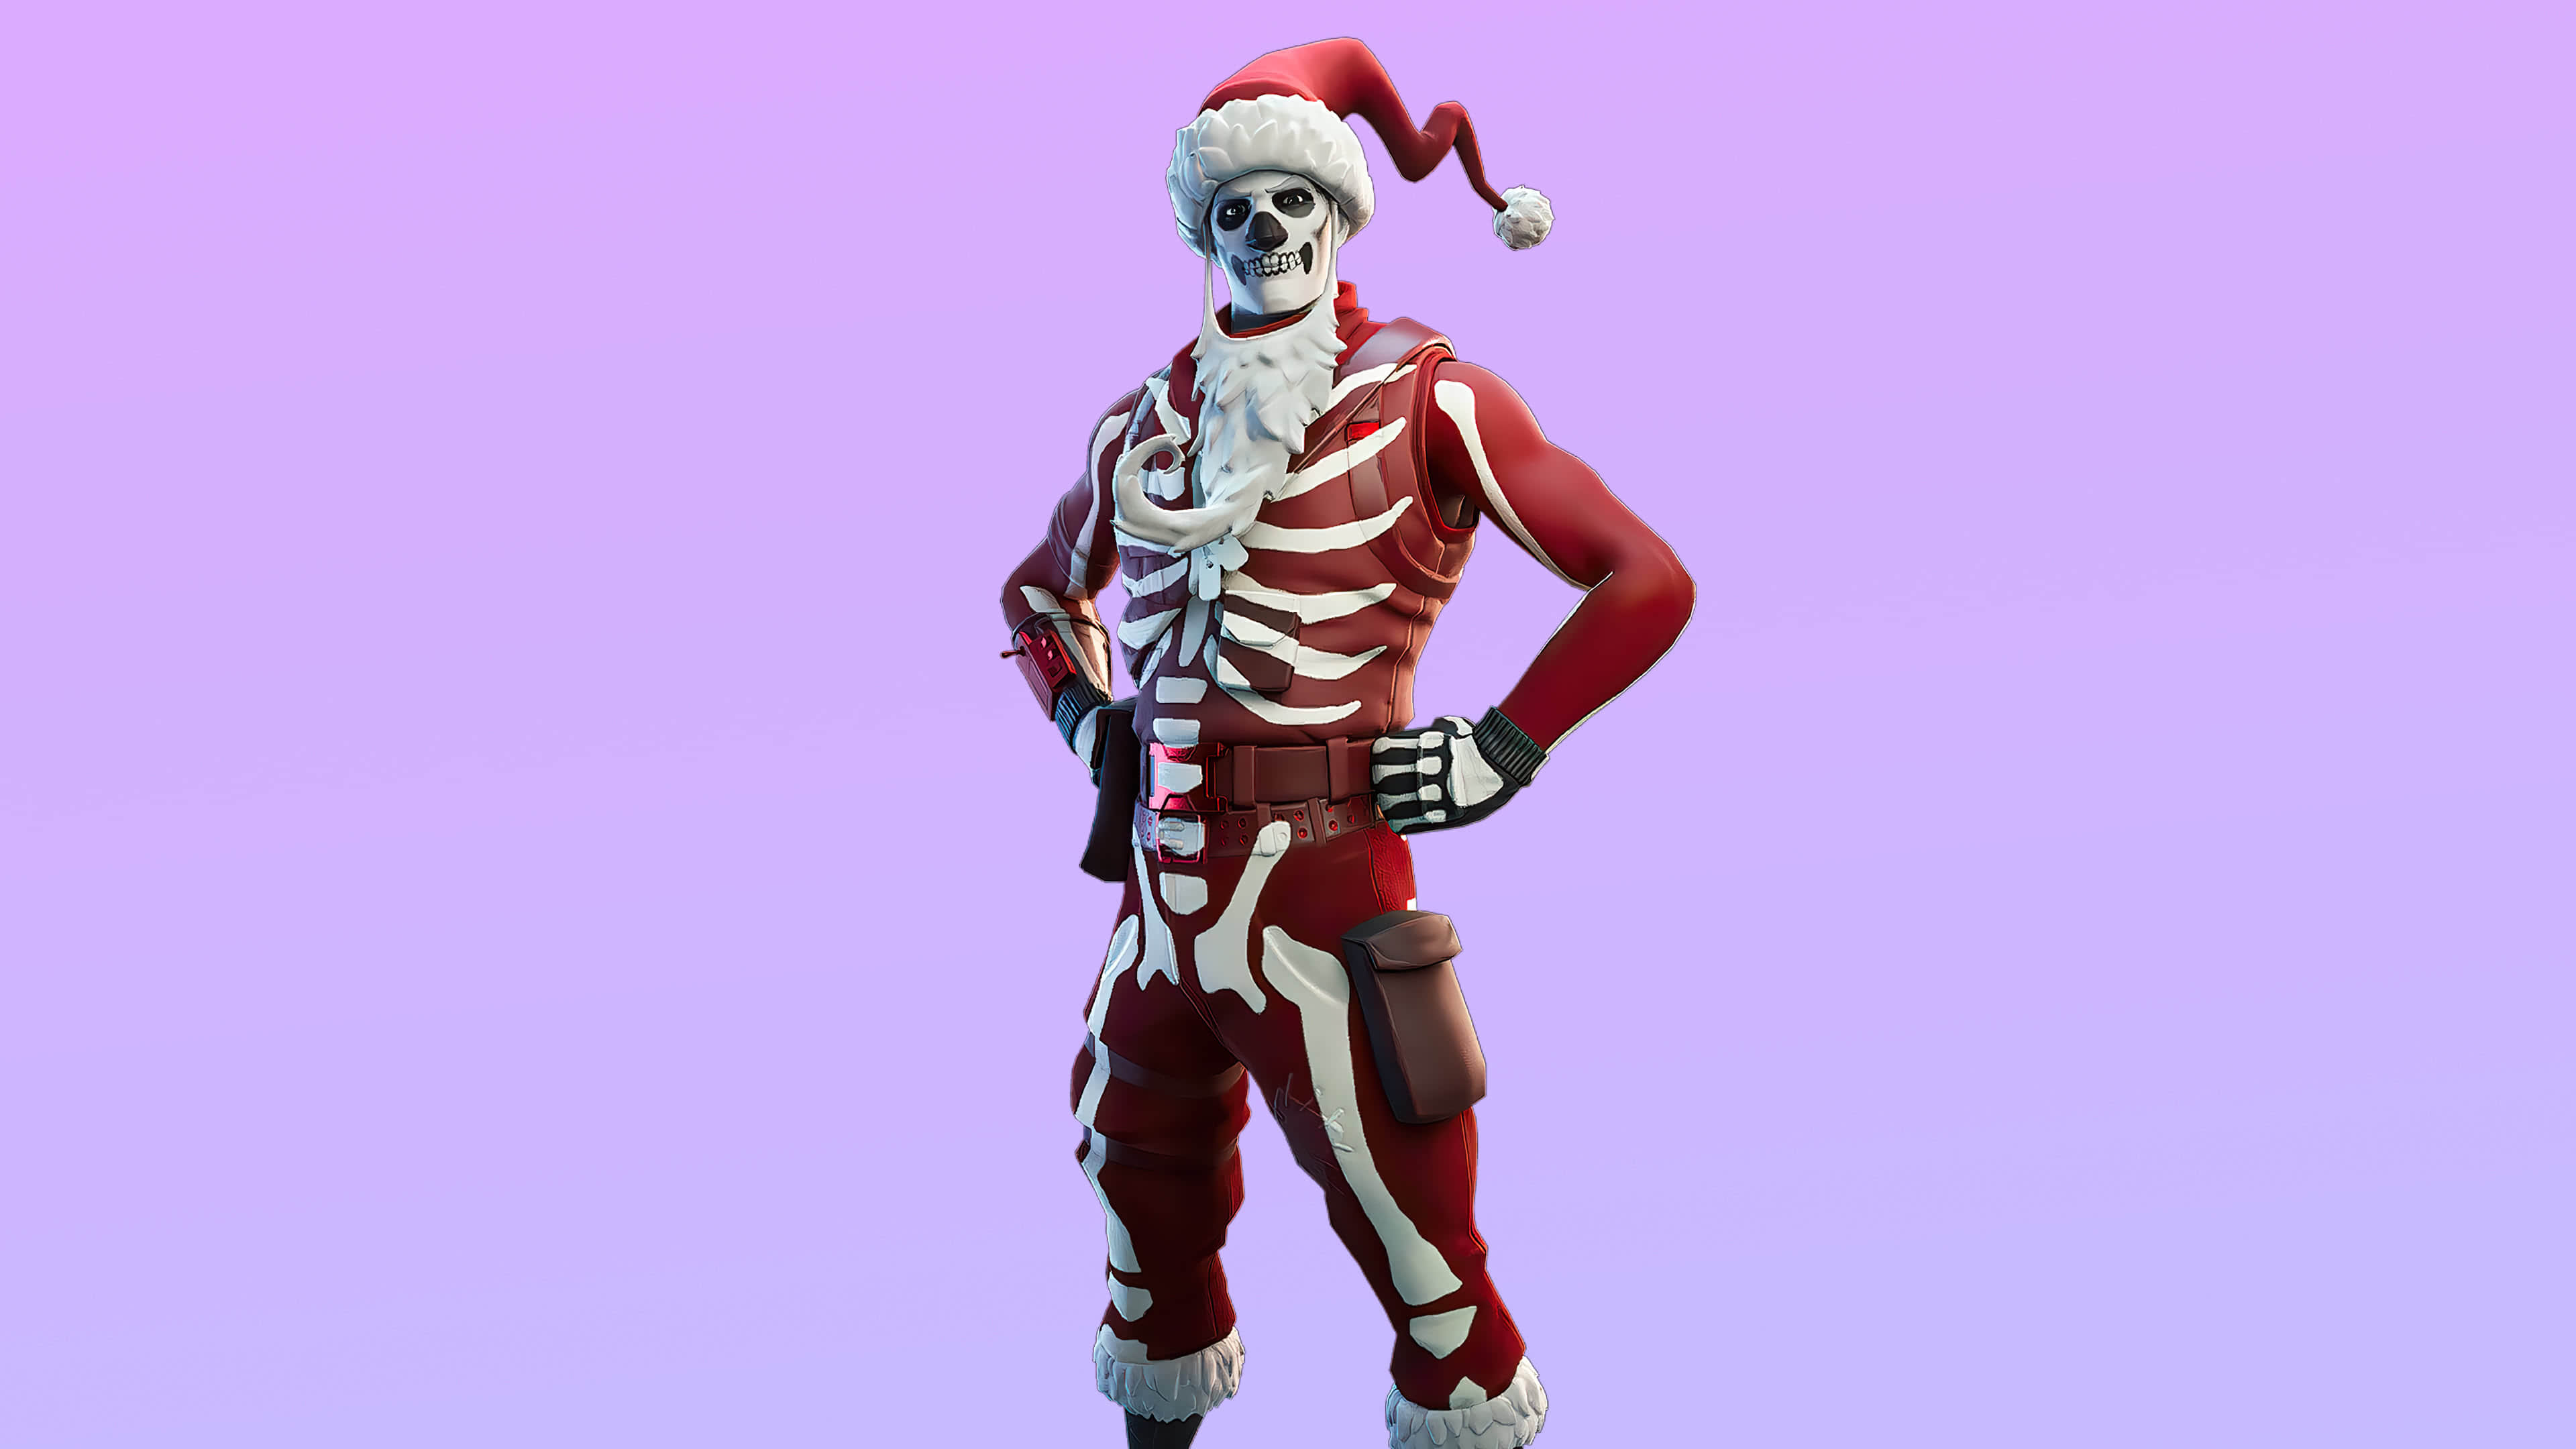 fortnite skull squad set yule trooper skin outfit uhd 4k wallpaper